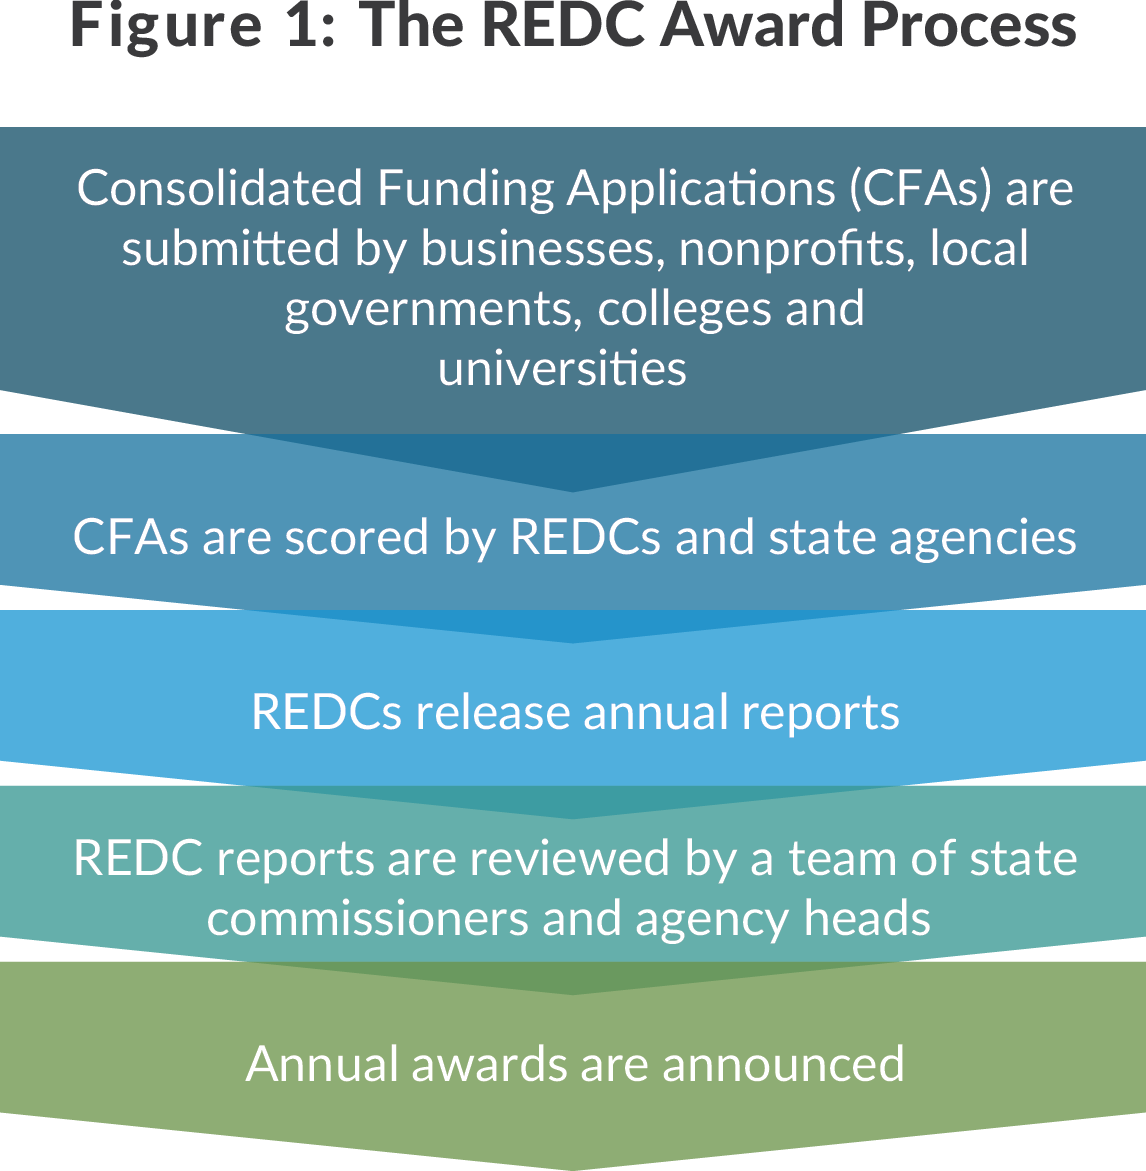 Figure of New York State Regional Economic Development Councils award process